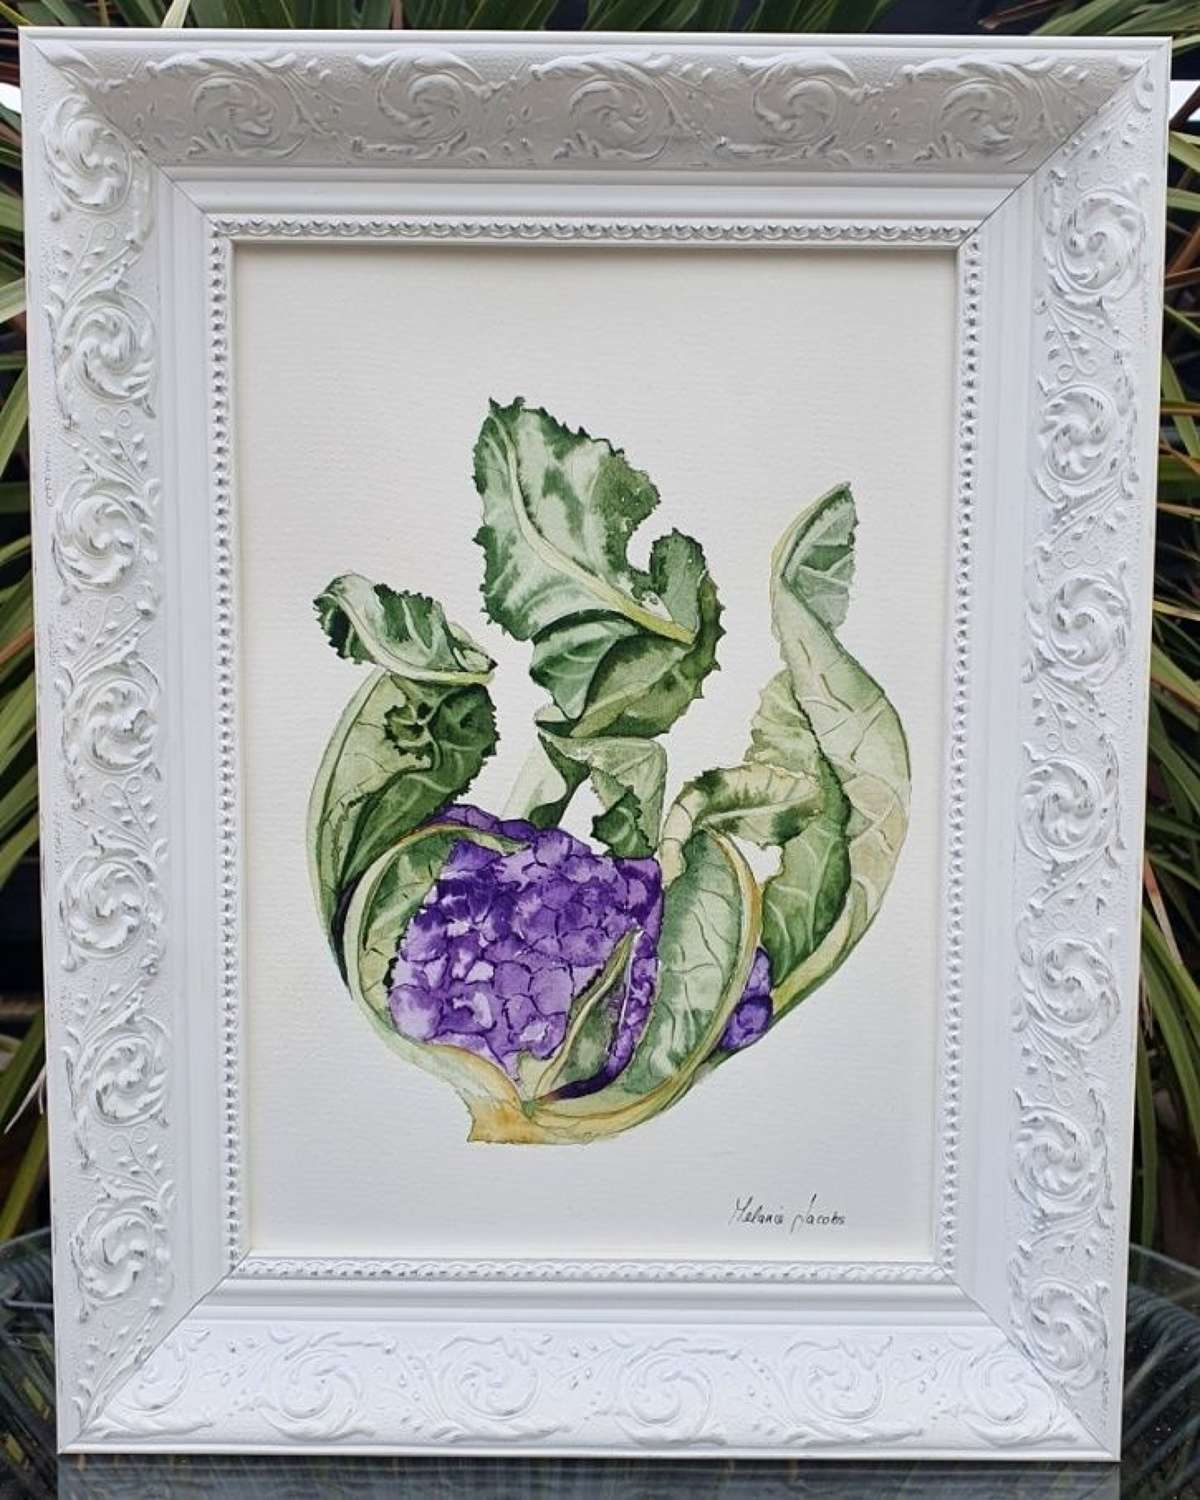 What A Beauty! - Original Watercolour Painting by Melanie Jacobs